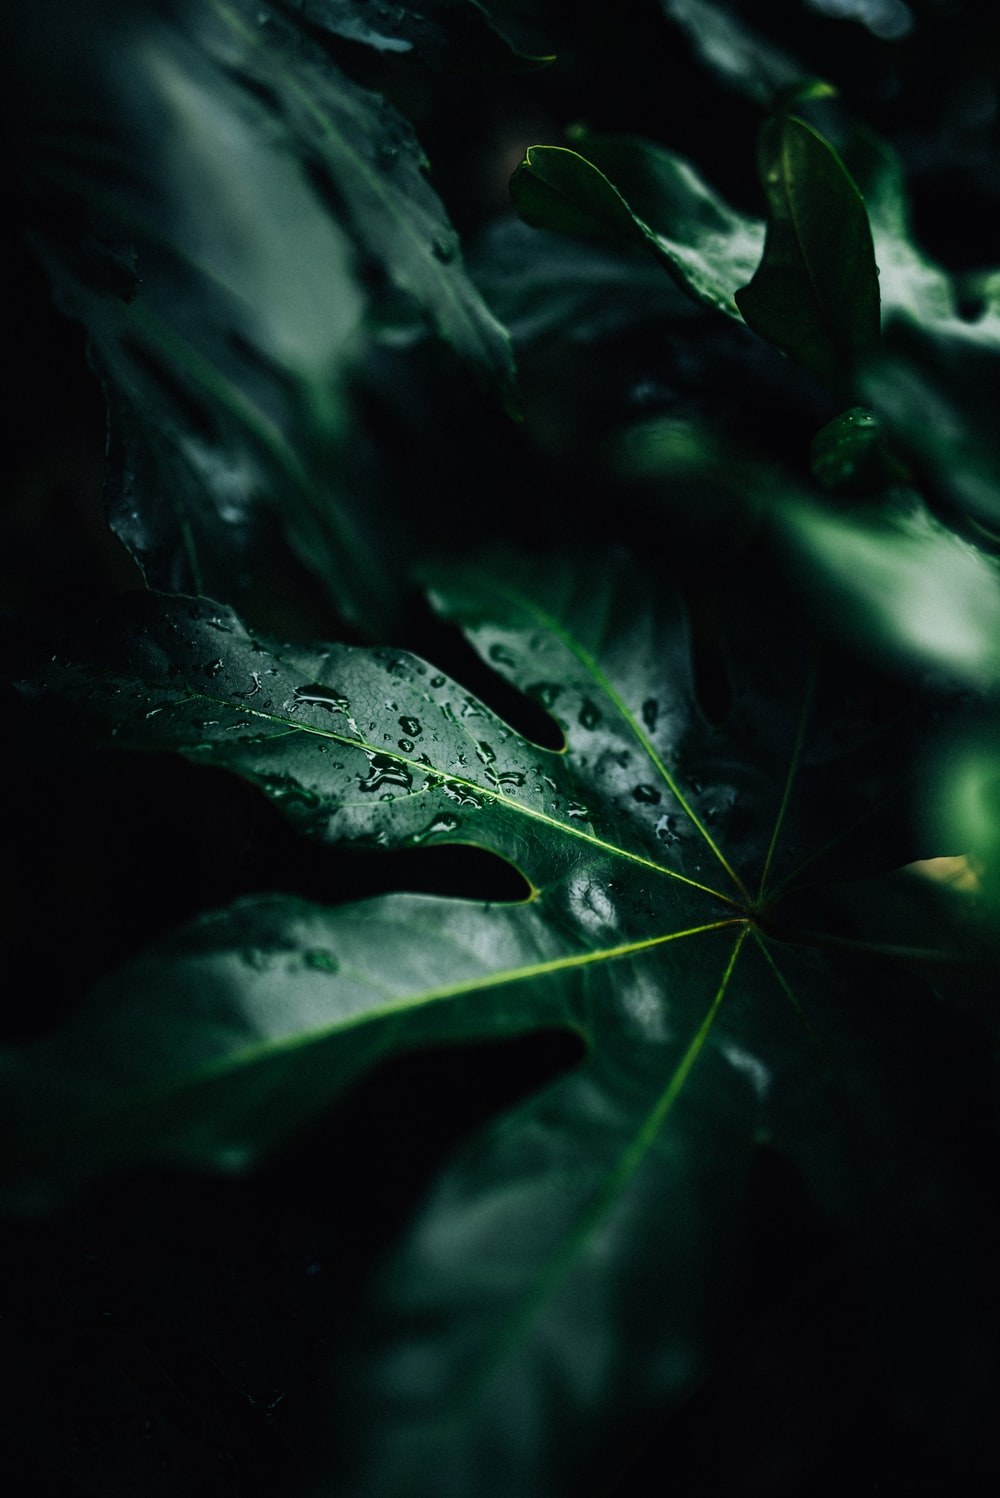 low-light photo of water drops on leaf